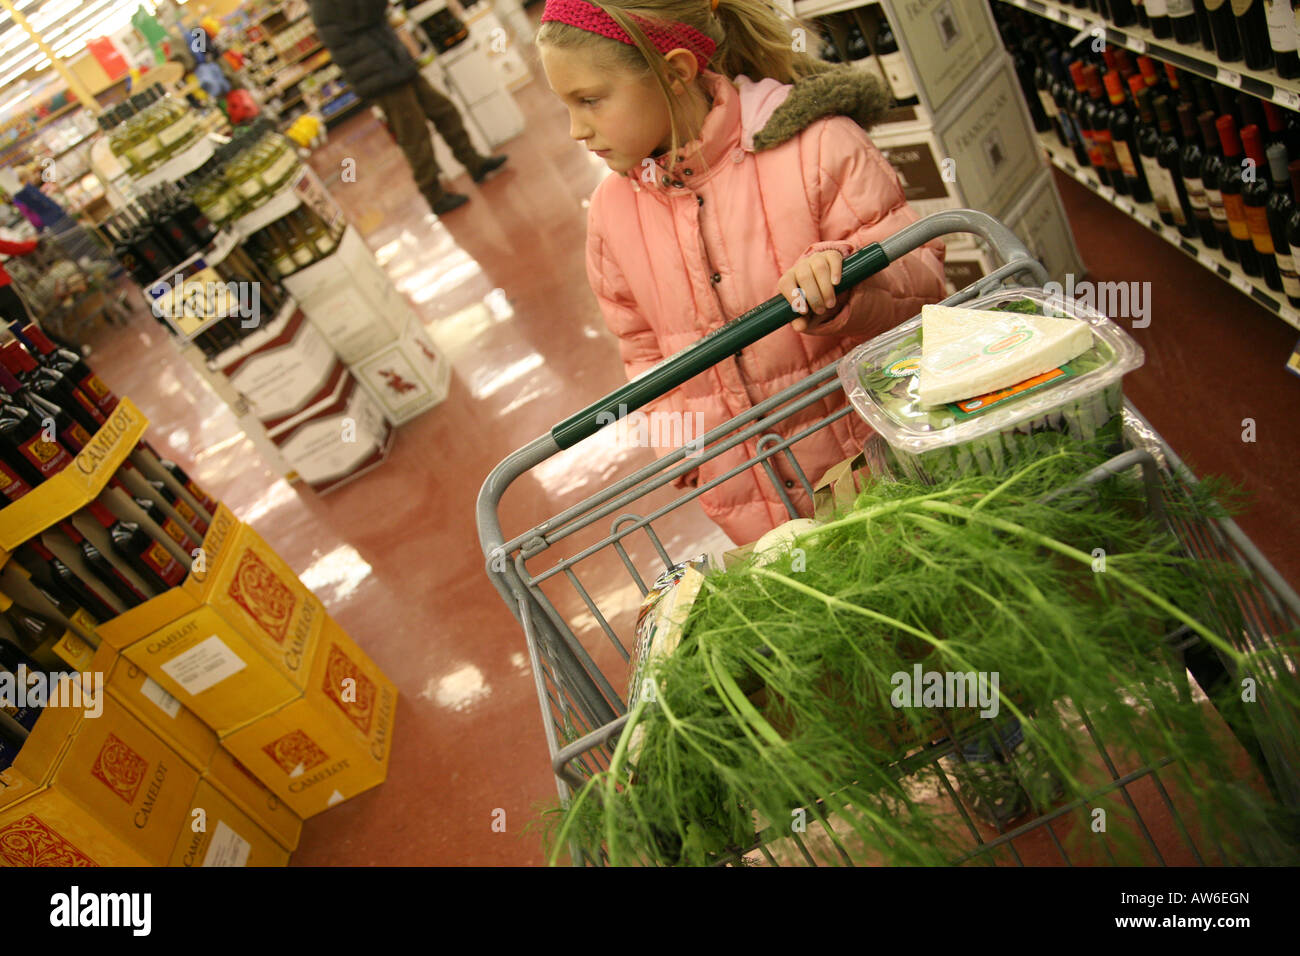 Girl shopping in grocery store buying produce - Stock Image